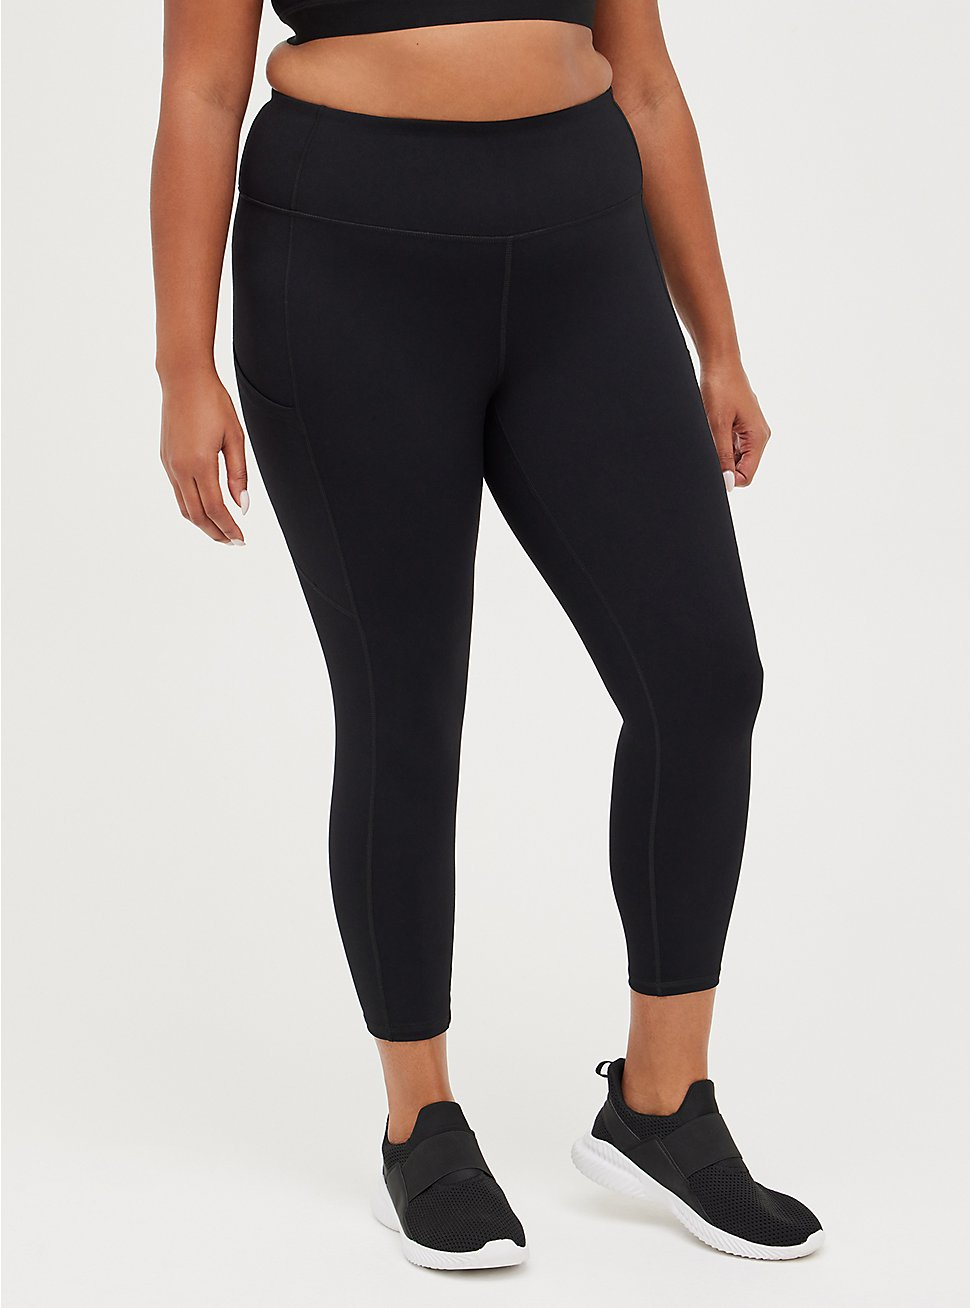 Black Active Lightweight Legging with Pockets, BLACK, hi-res